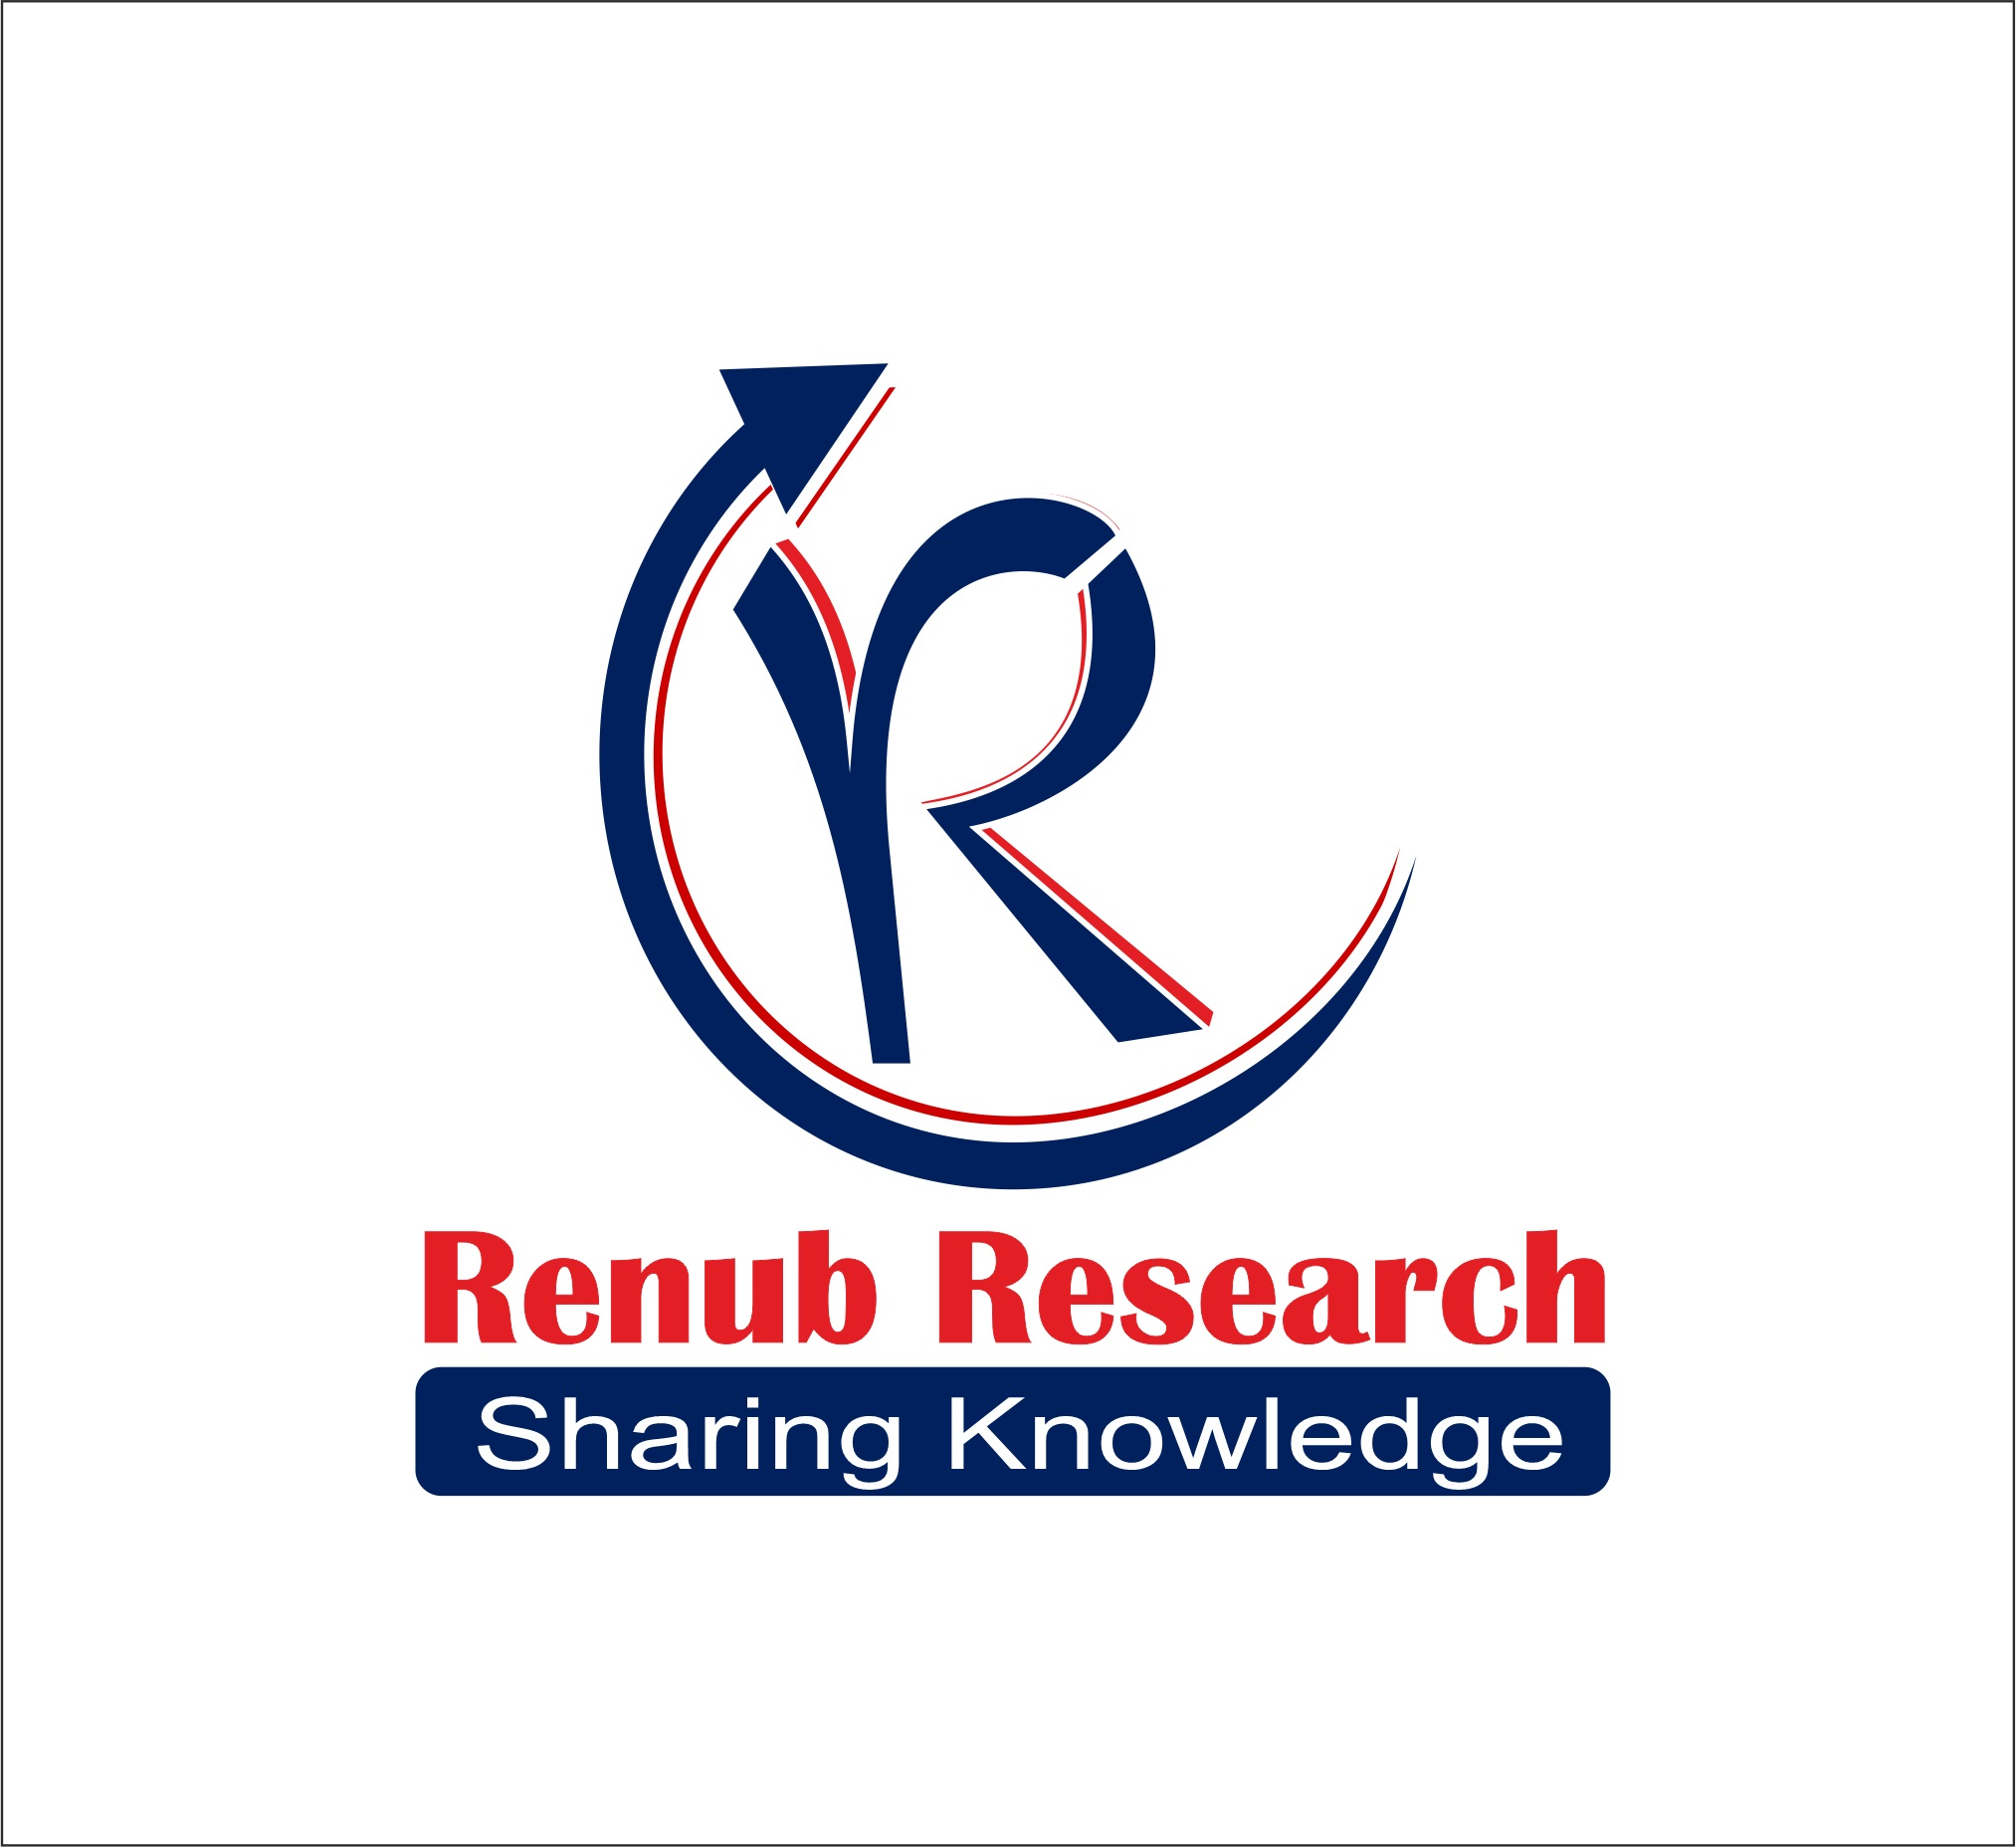 Orthopedic Prosthetic Market Global Forecast by Products & Technology - Renub Research